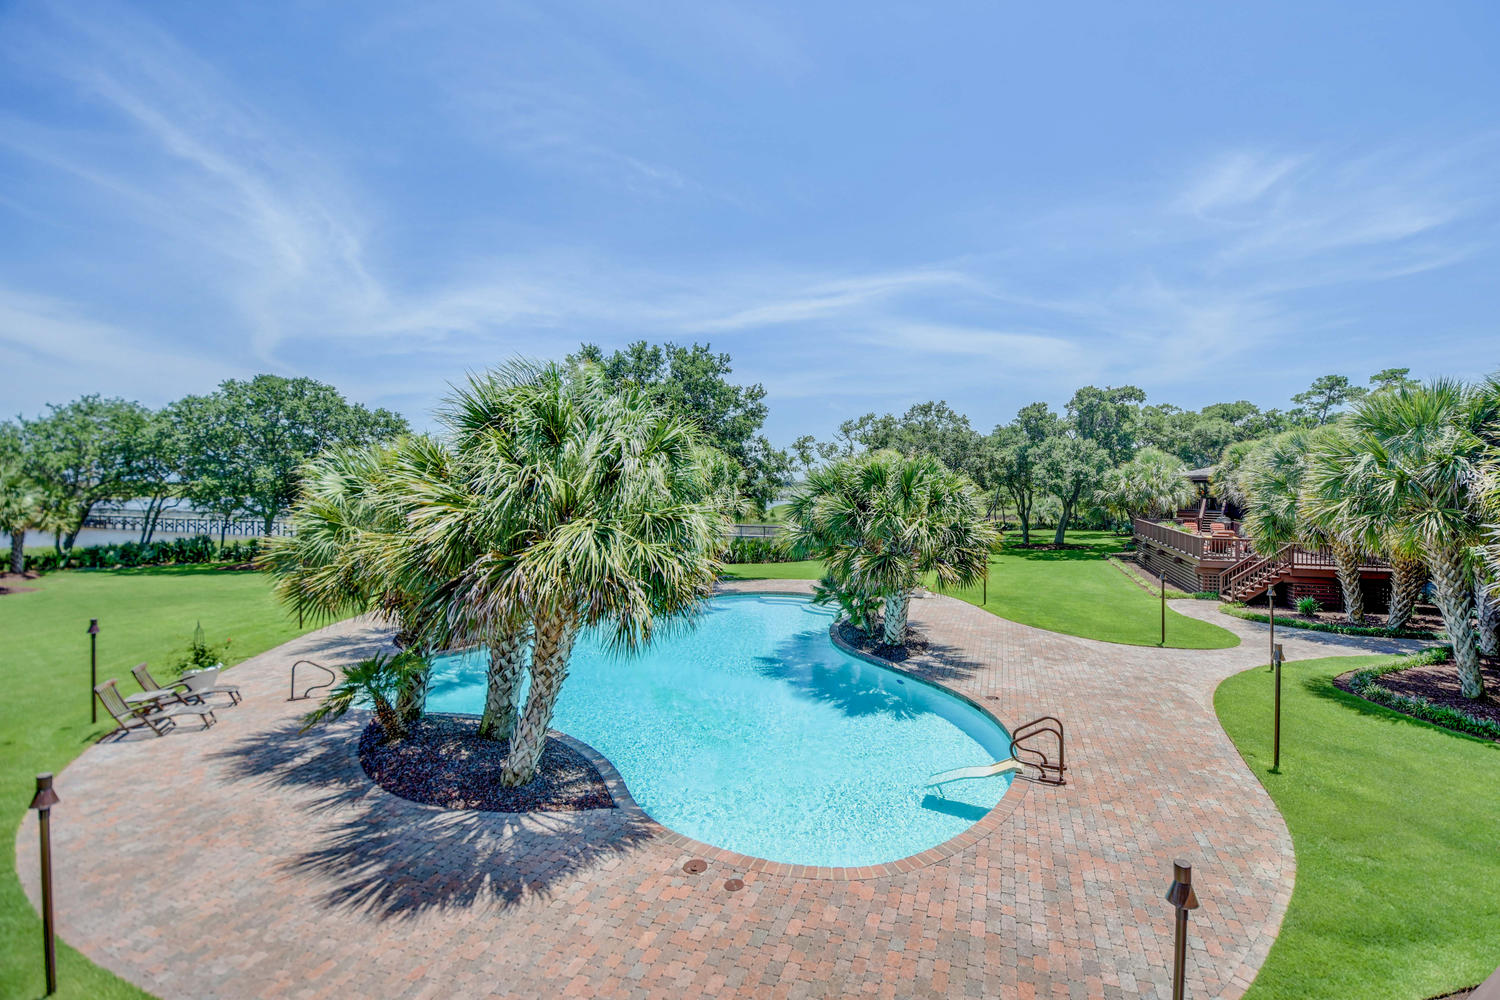 7422 Sea Lilly Ln Wilmington-large-034-288-Large pool patio for-1500x1000-72dpi.jpg